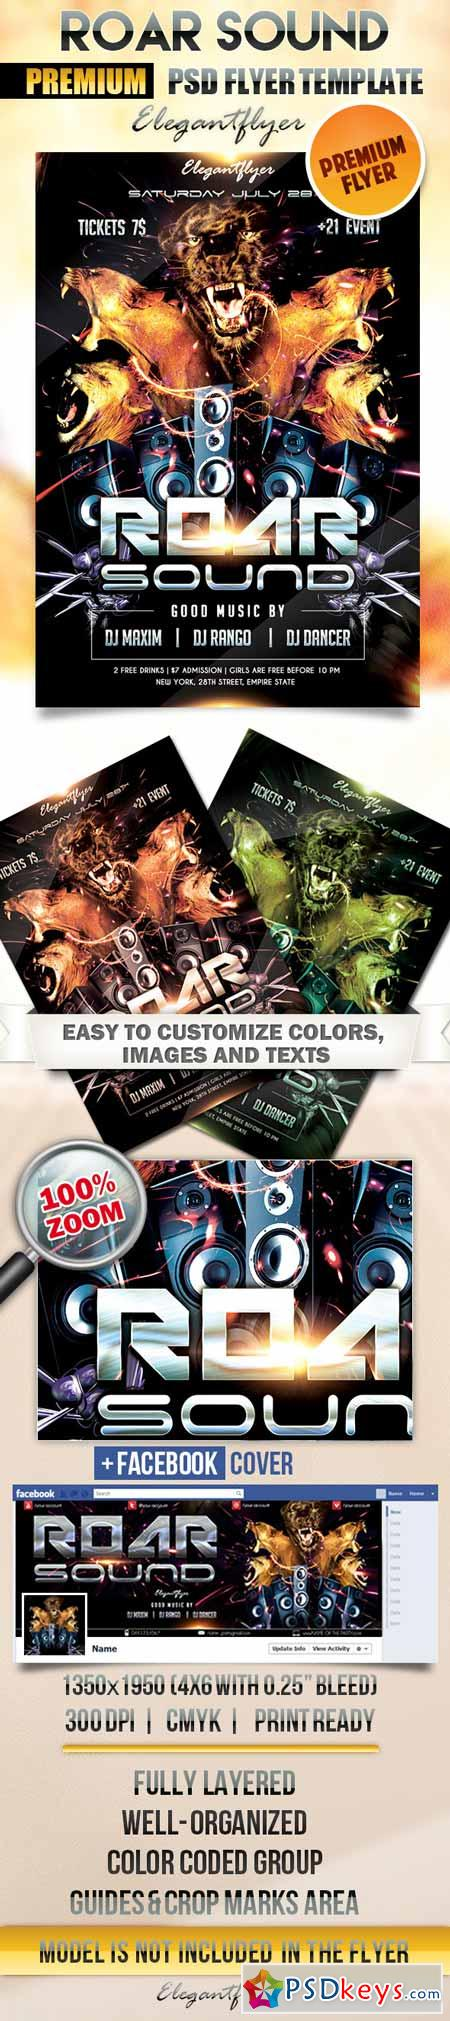 roar sound  u2013 flyer psd template   facebook cover  u00bb free